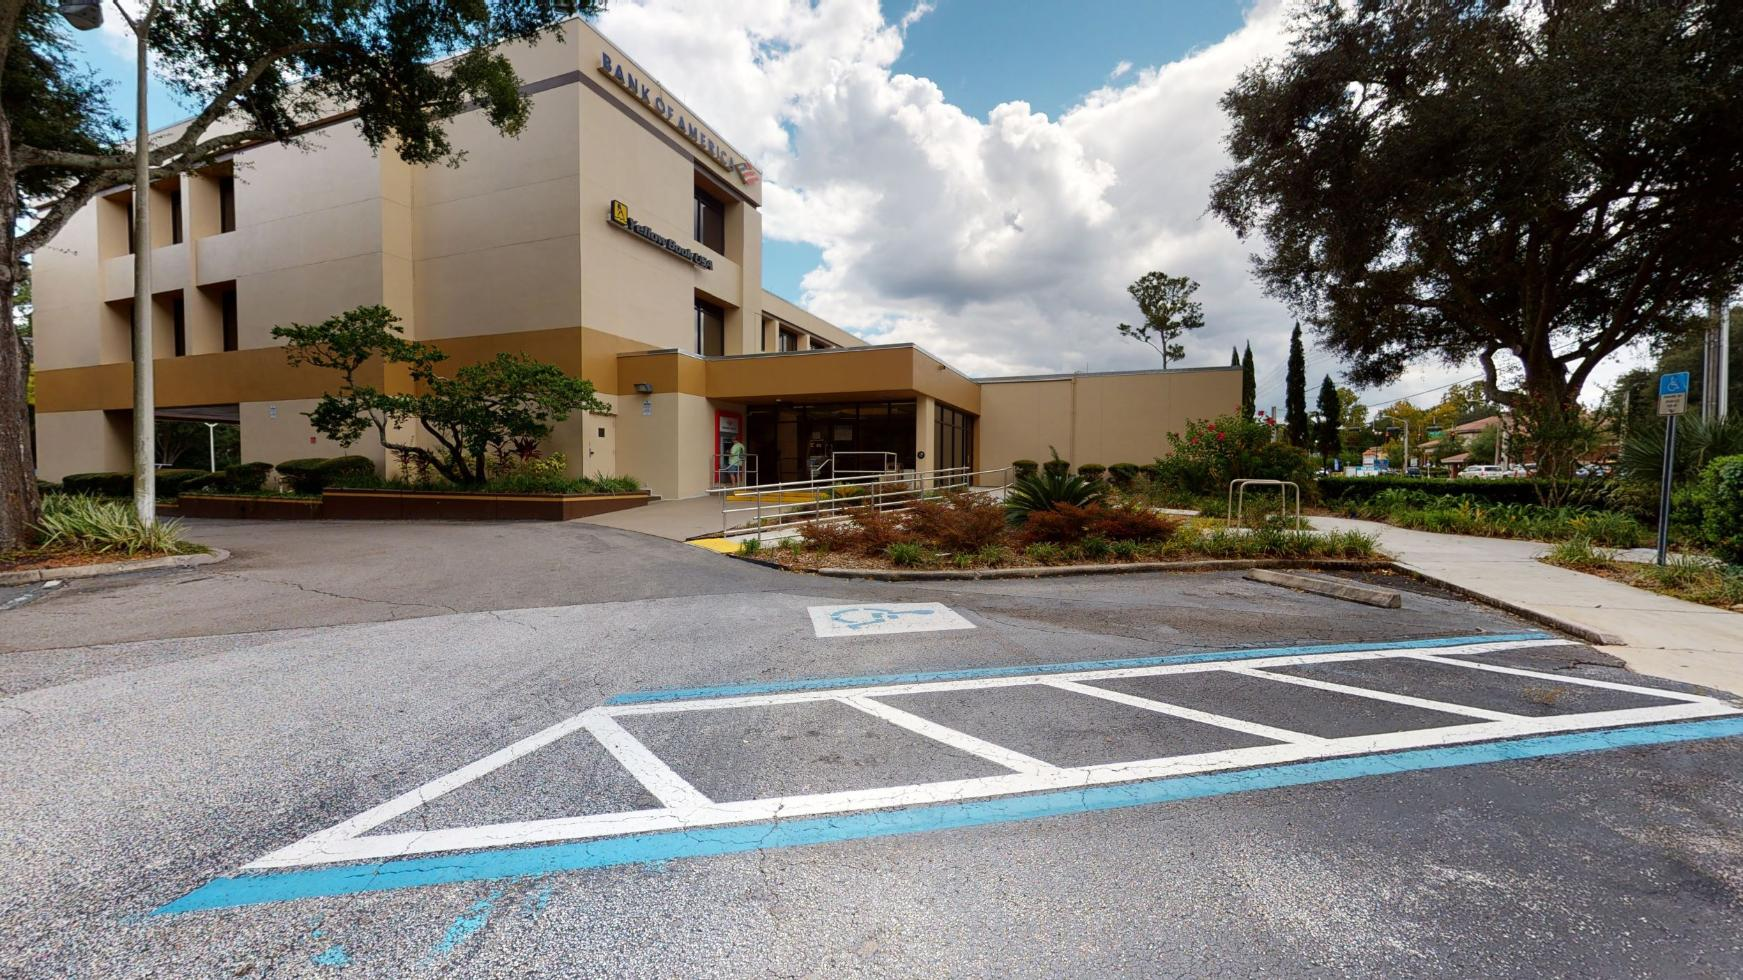 Bank of America financial center with drive-thru ATM   2627 NW 43Rd St, Gainesville, FL 32606